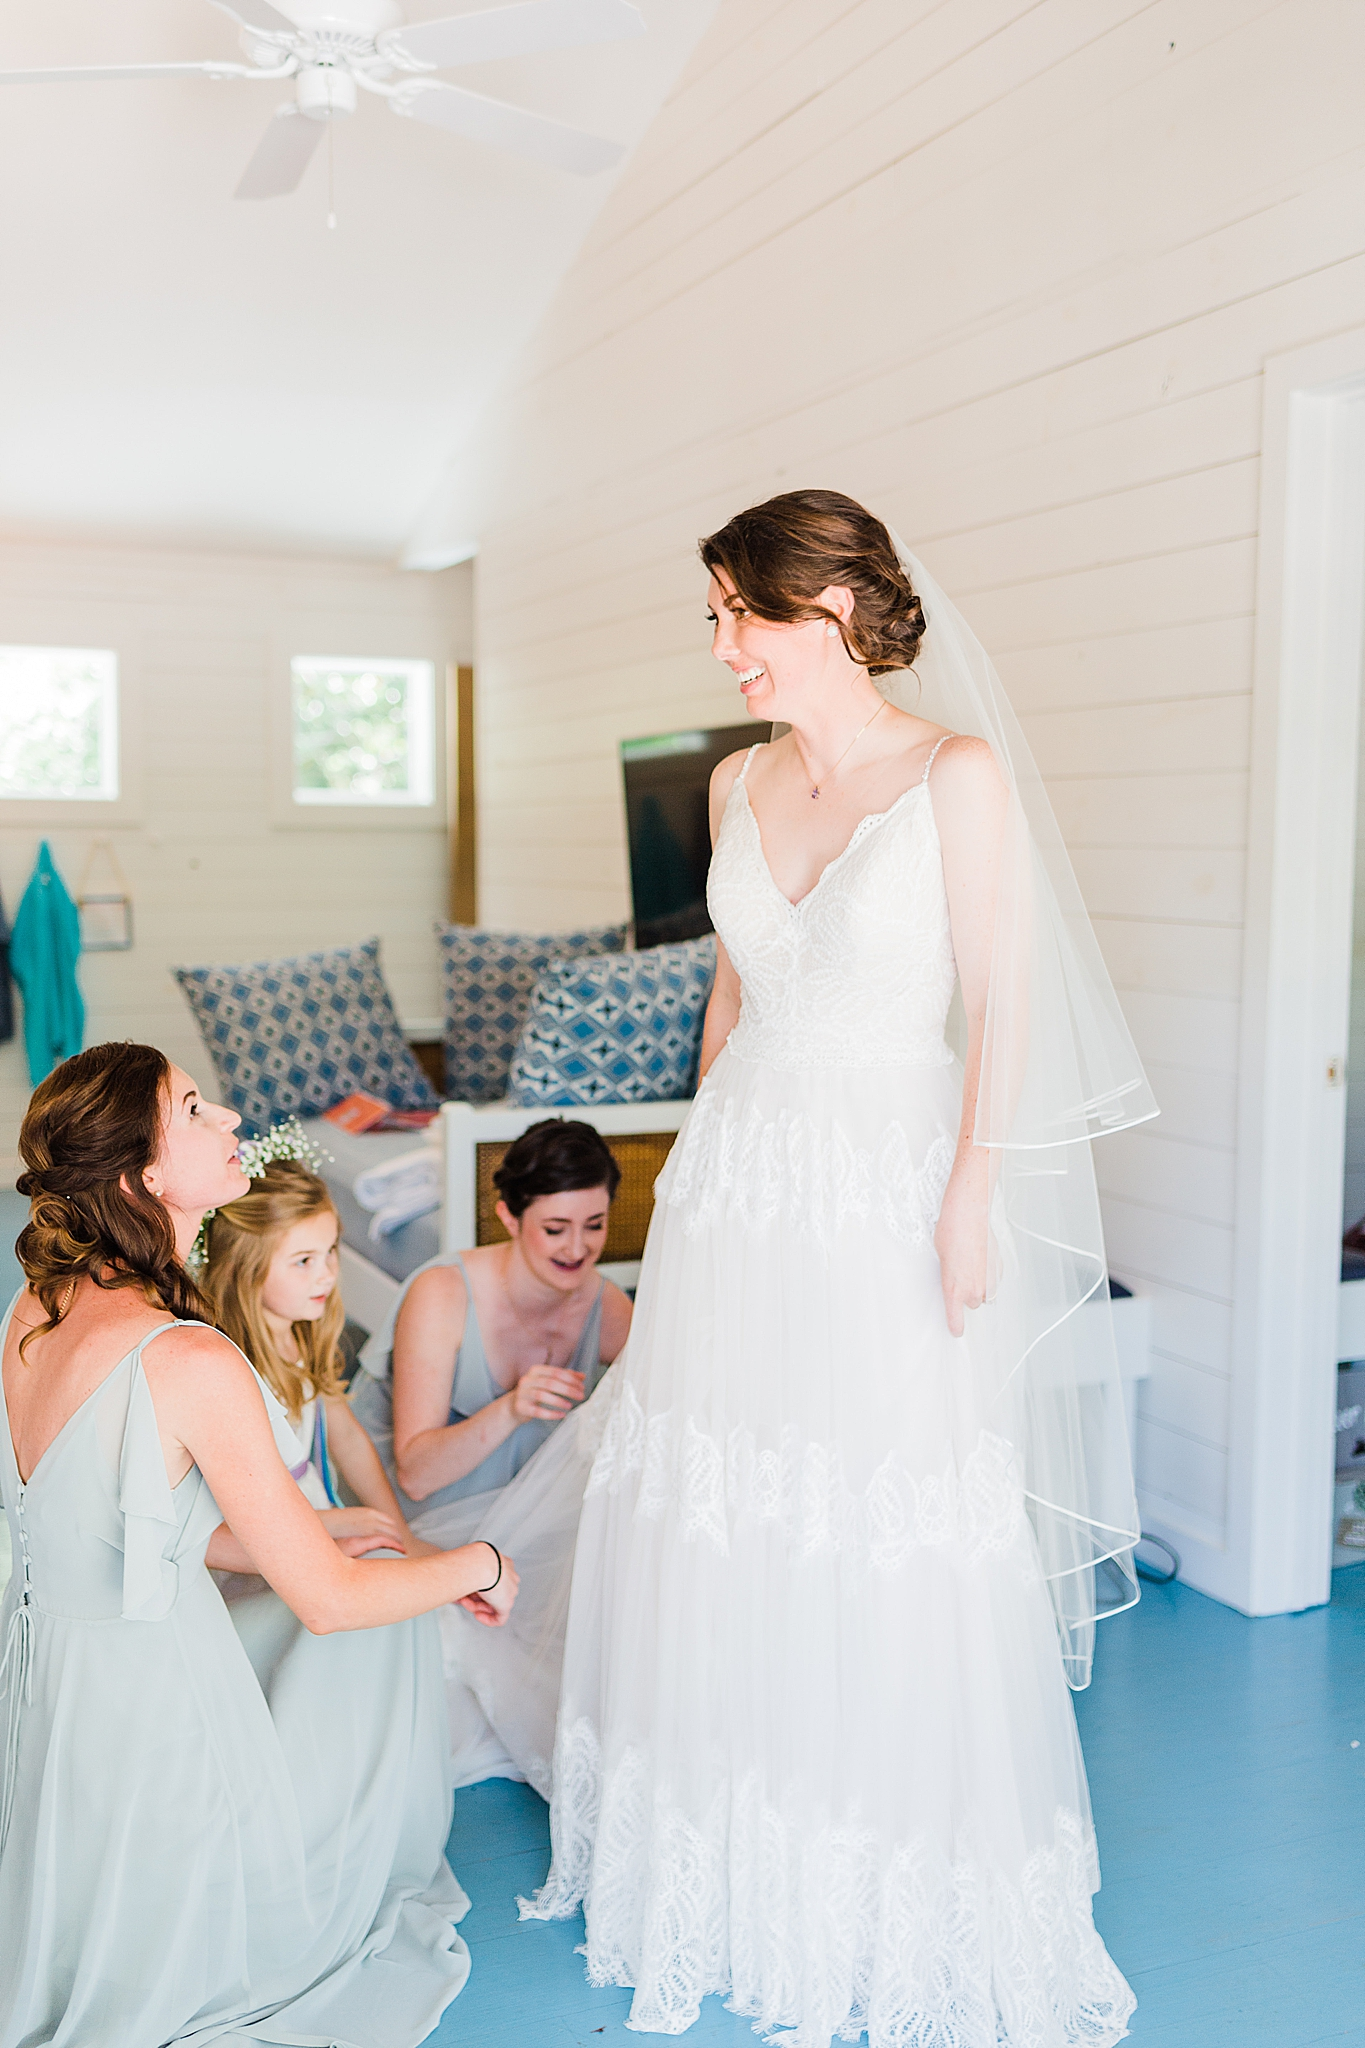 bridesmaids help bride with wedding gown